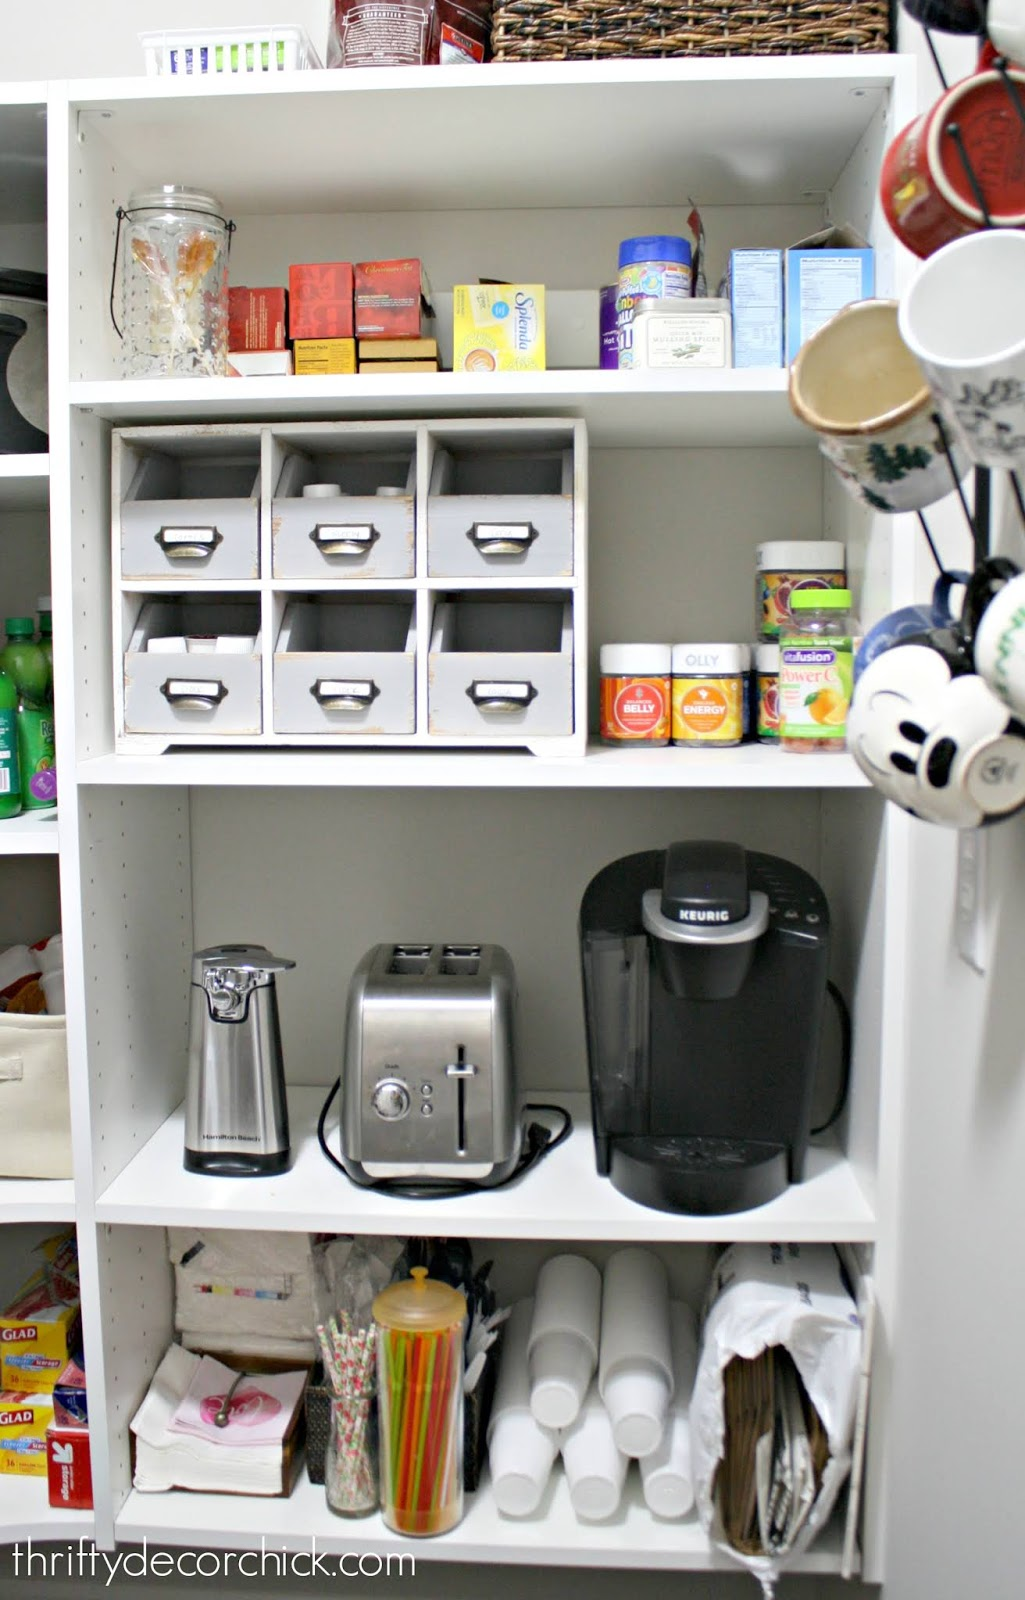 Great tips for organizing items in the pantry